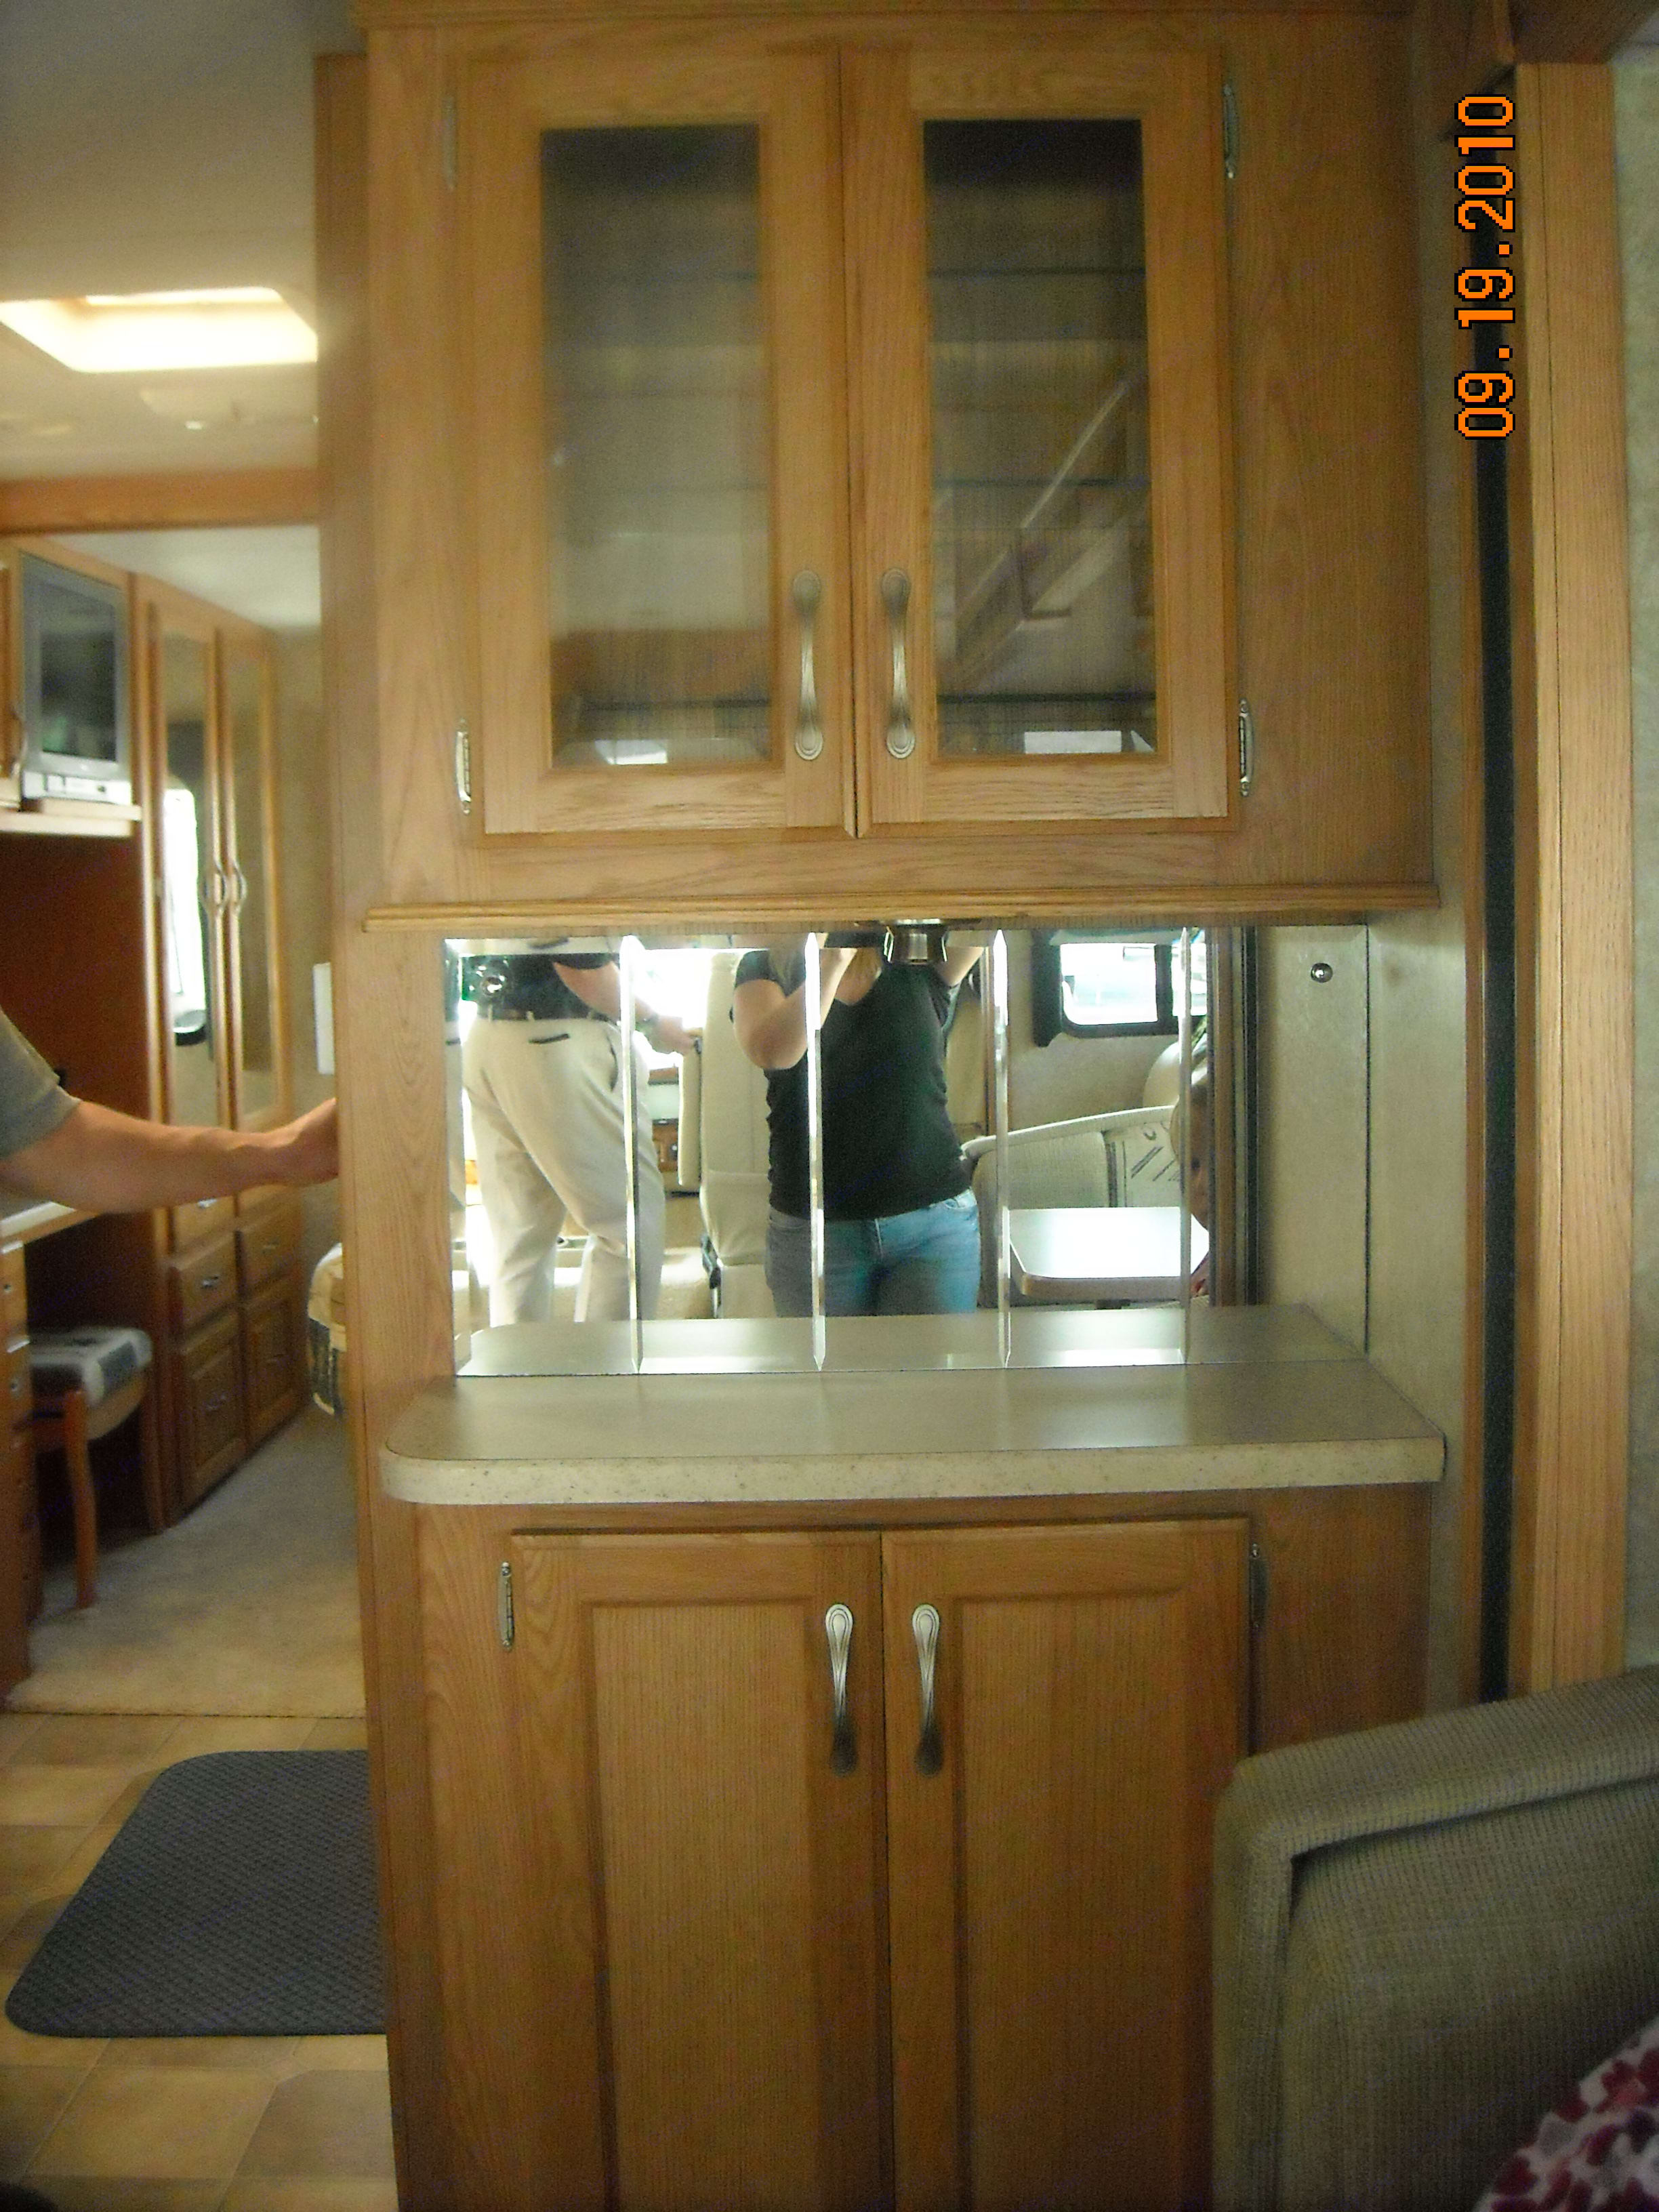 bar, bar, bar and bar.  built in bottle rack, so your beverages travel safely. Thor Motor Coach Hurricane 2006